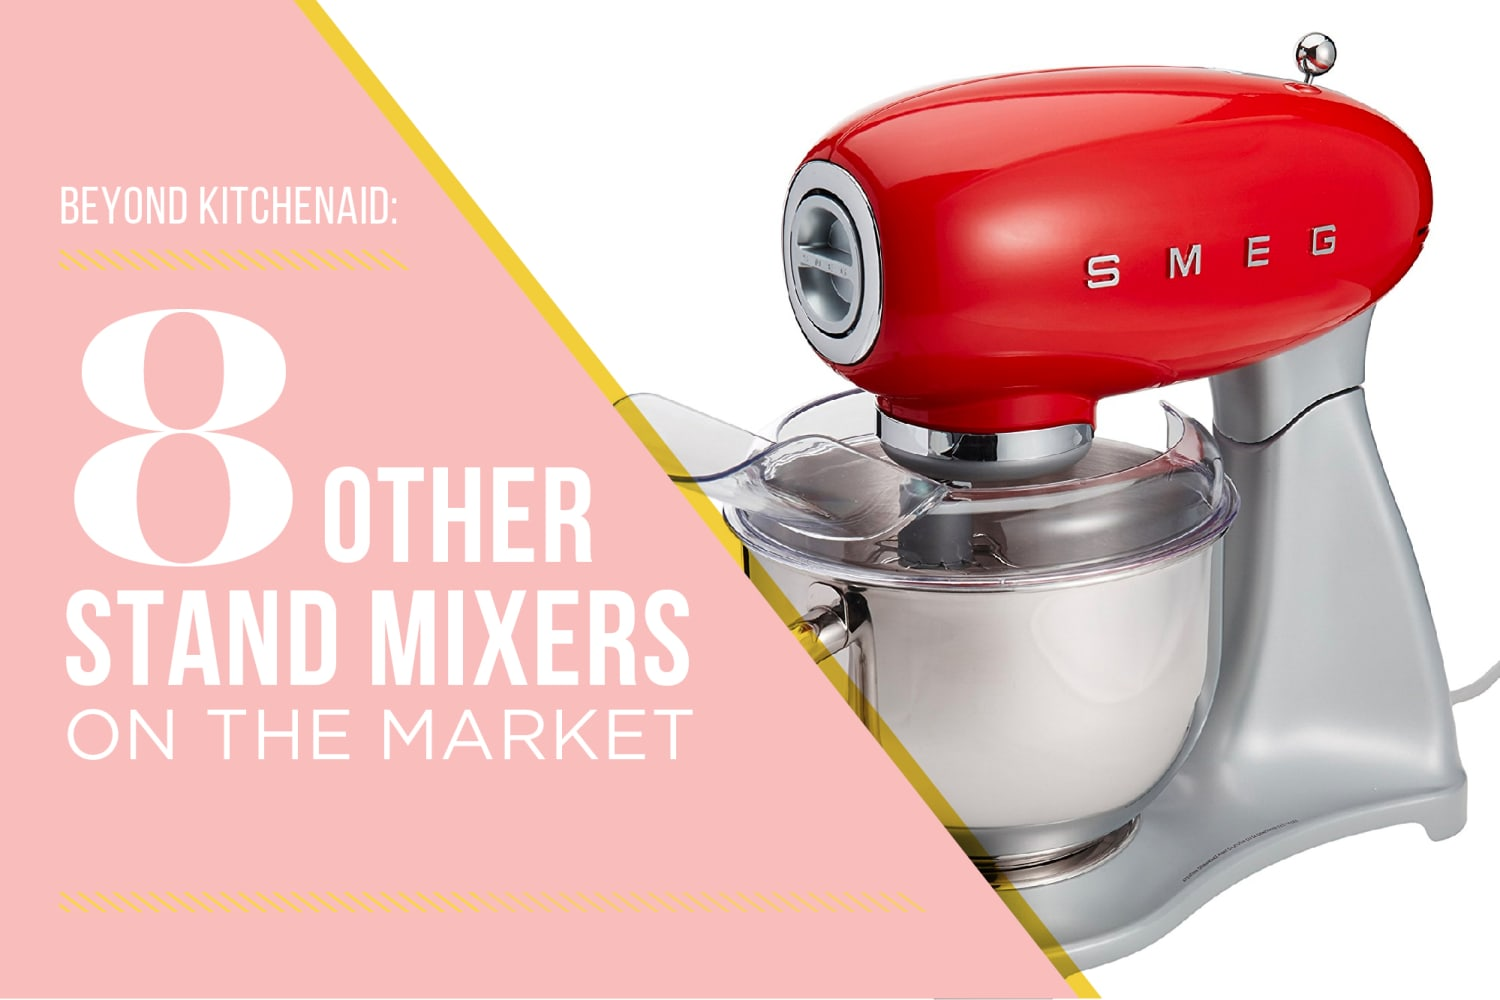 Beyond Kitchenaid 8 Other Stand Mixers On The Market Kitchn